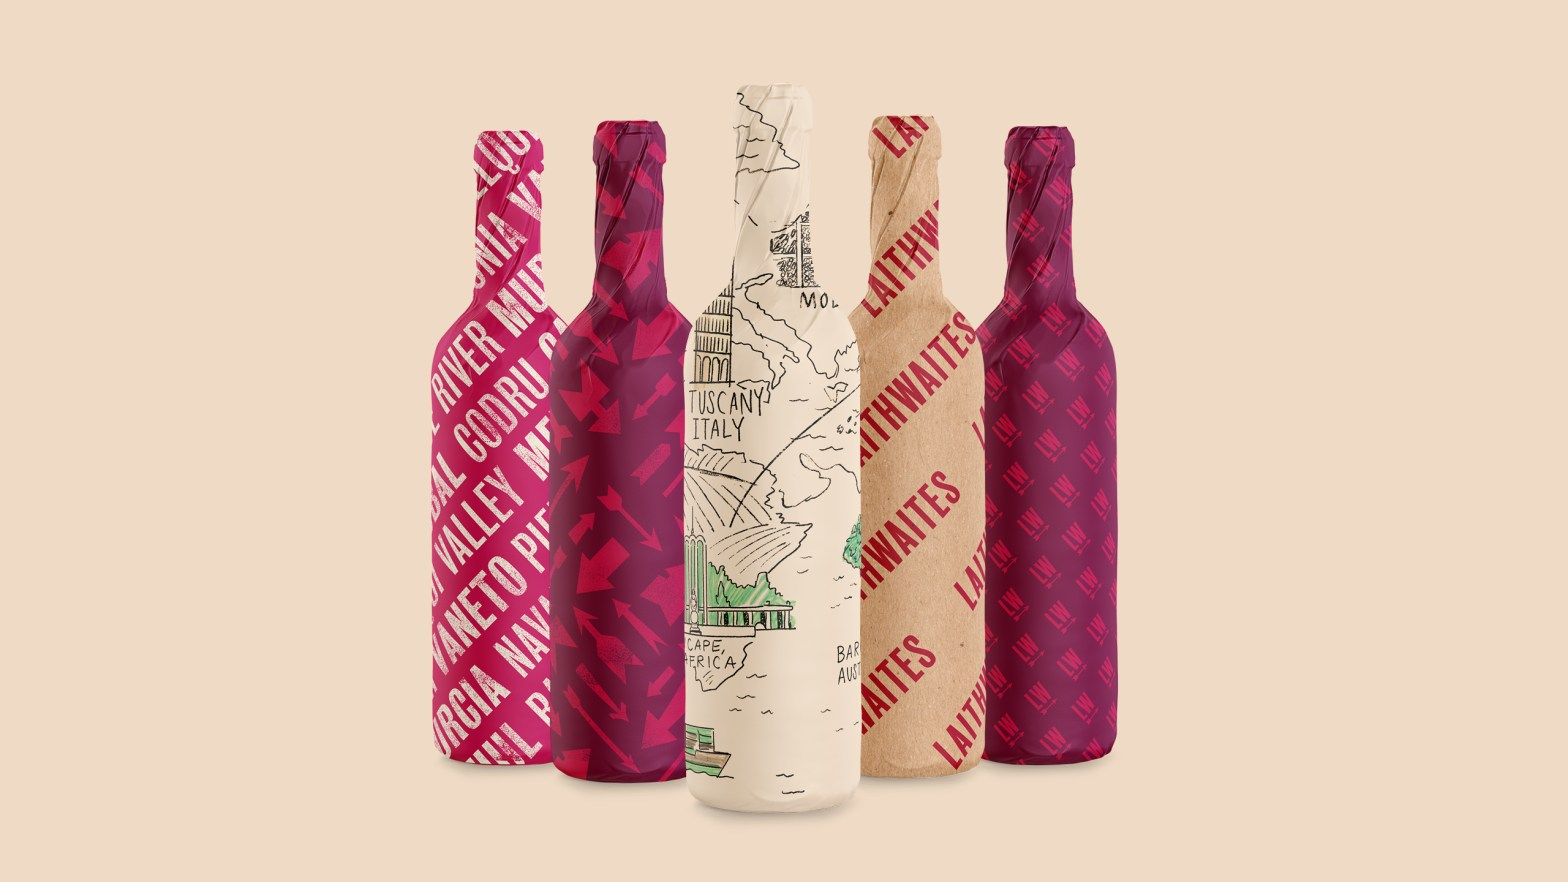 Thumbnail for Laithwaites Delivers Beautiful Wine And A Branding System To Match